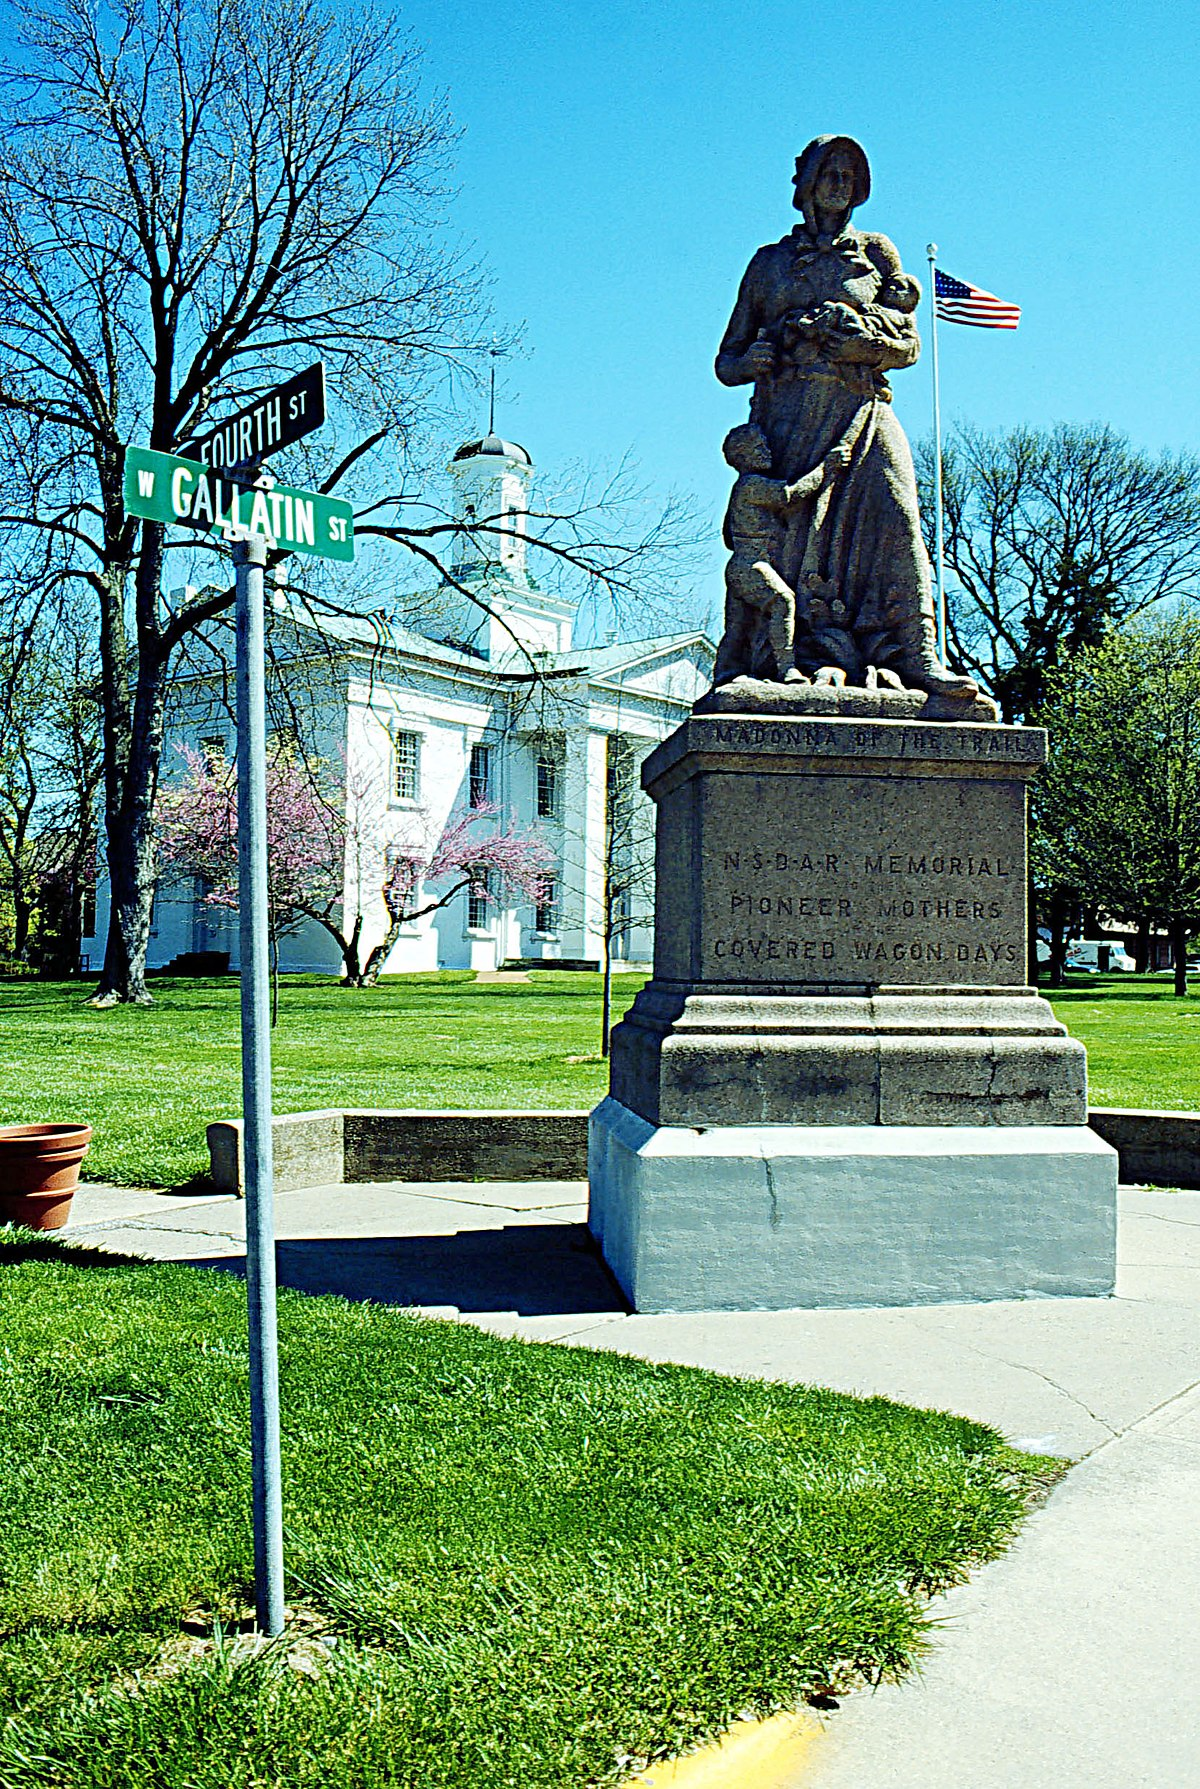 Vandalia Illinois Travel Guide At Wikivoyage